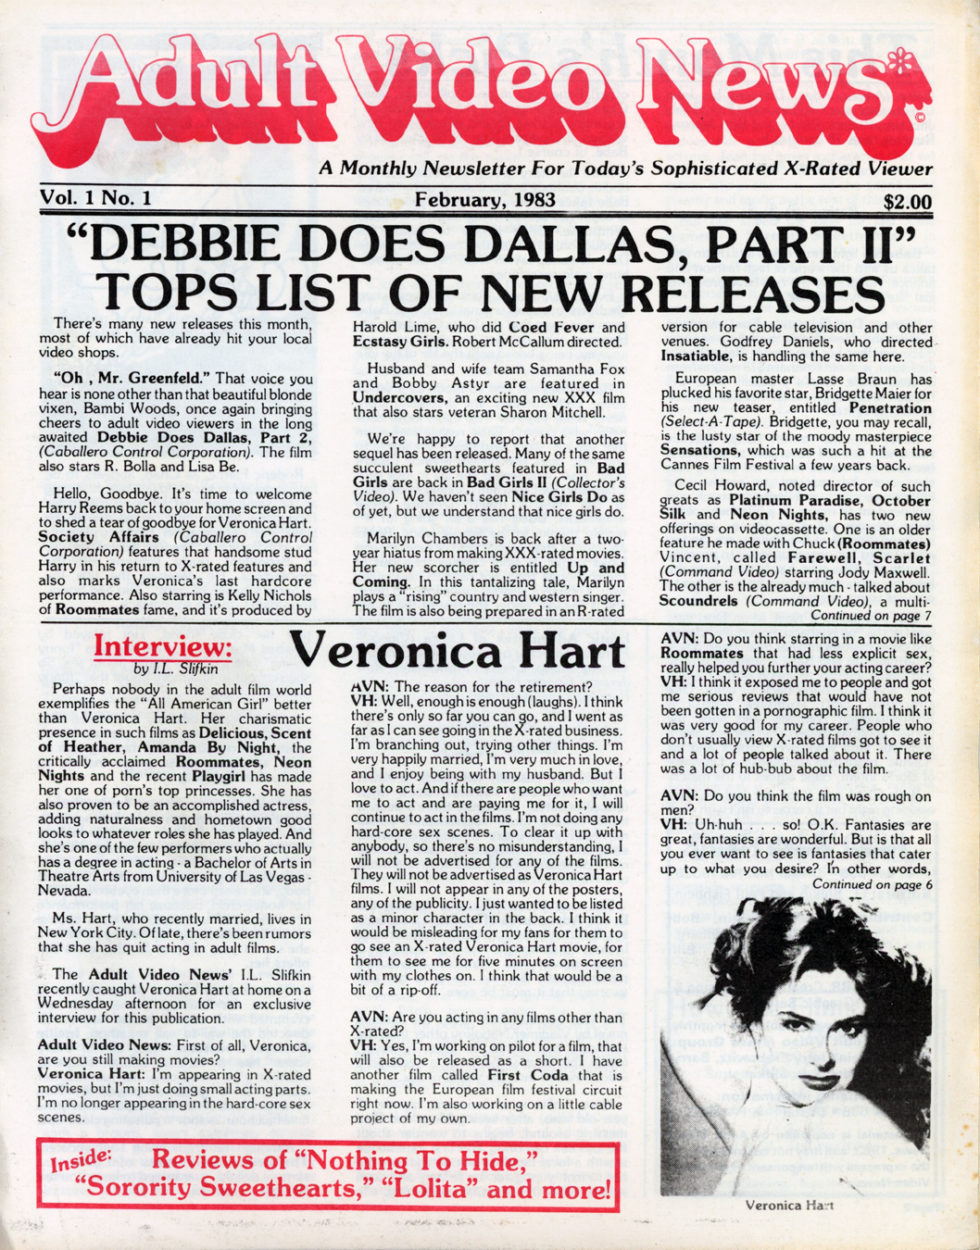 Adult Video News – The Industry Bible, The First Year (1983-84)